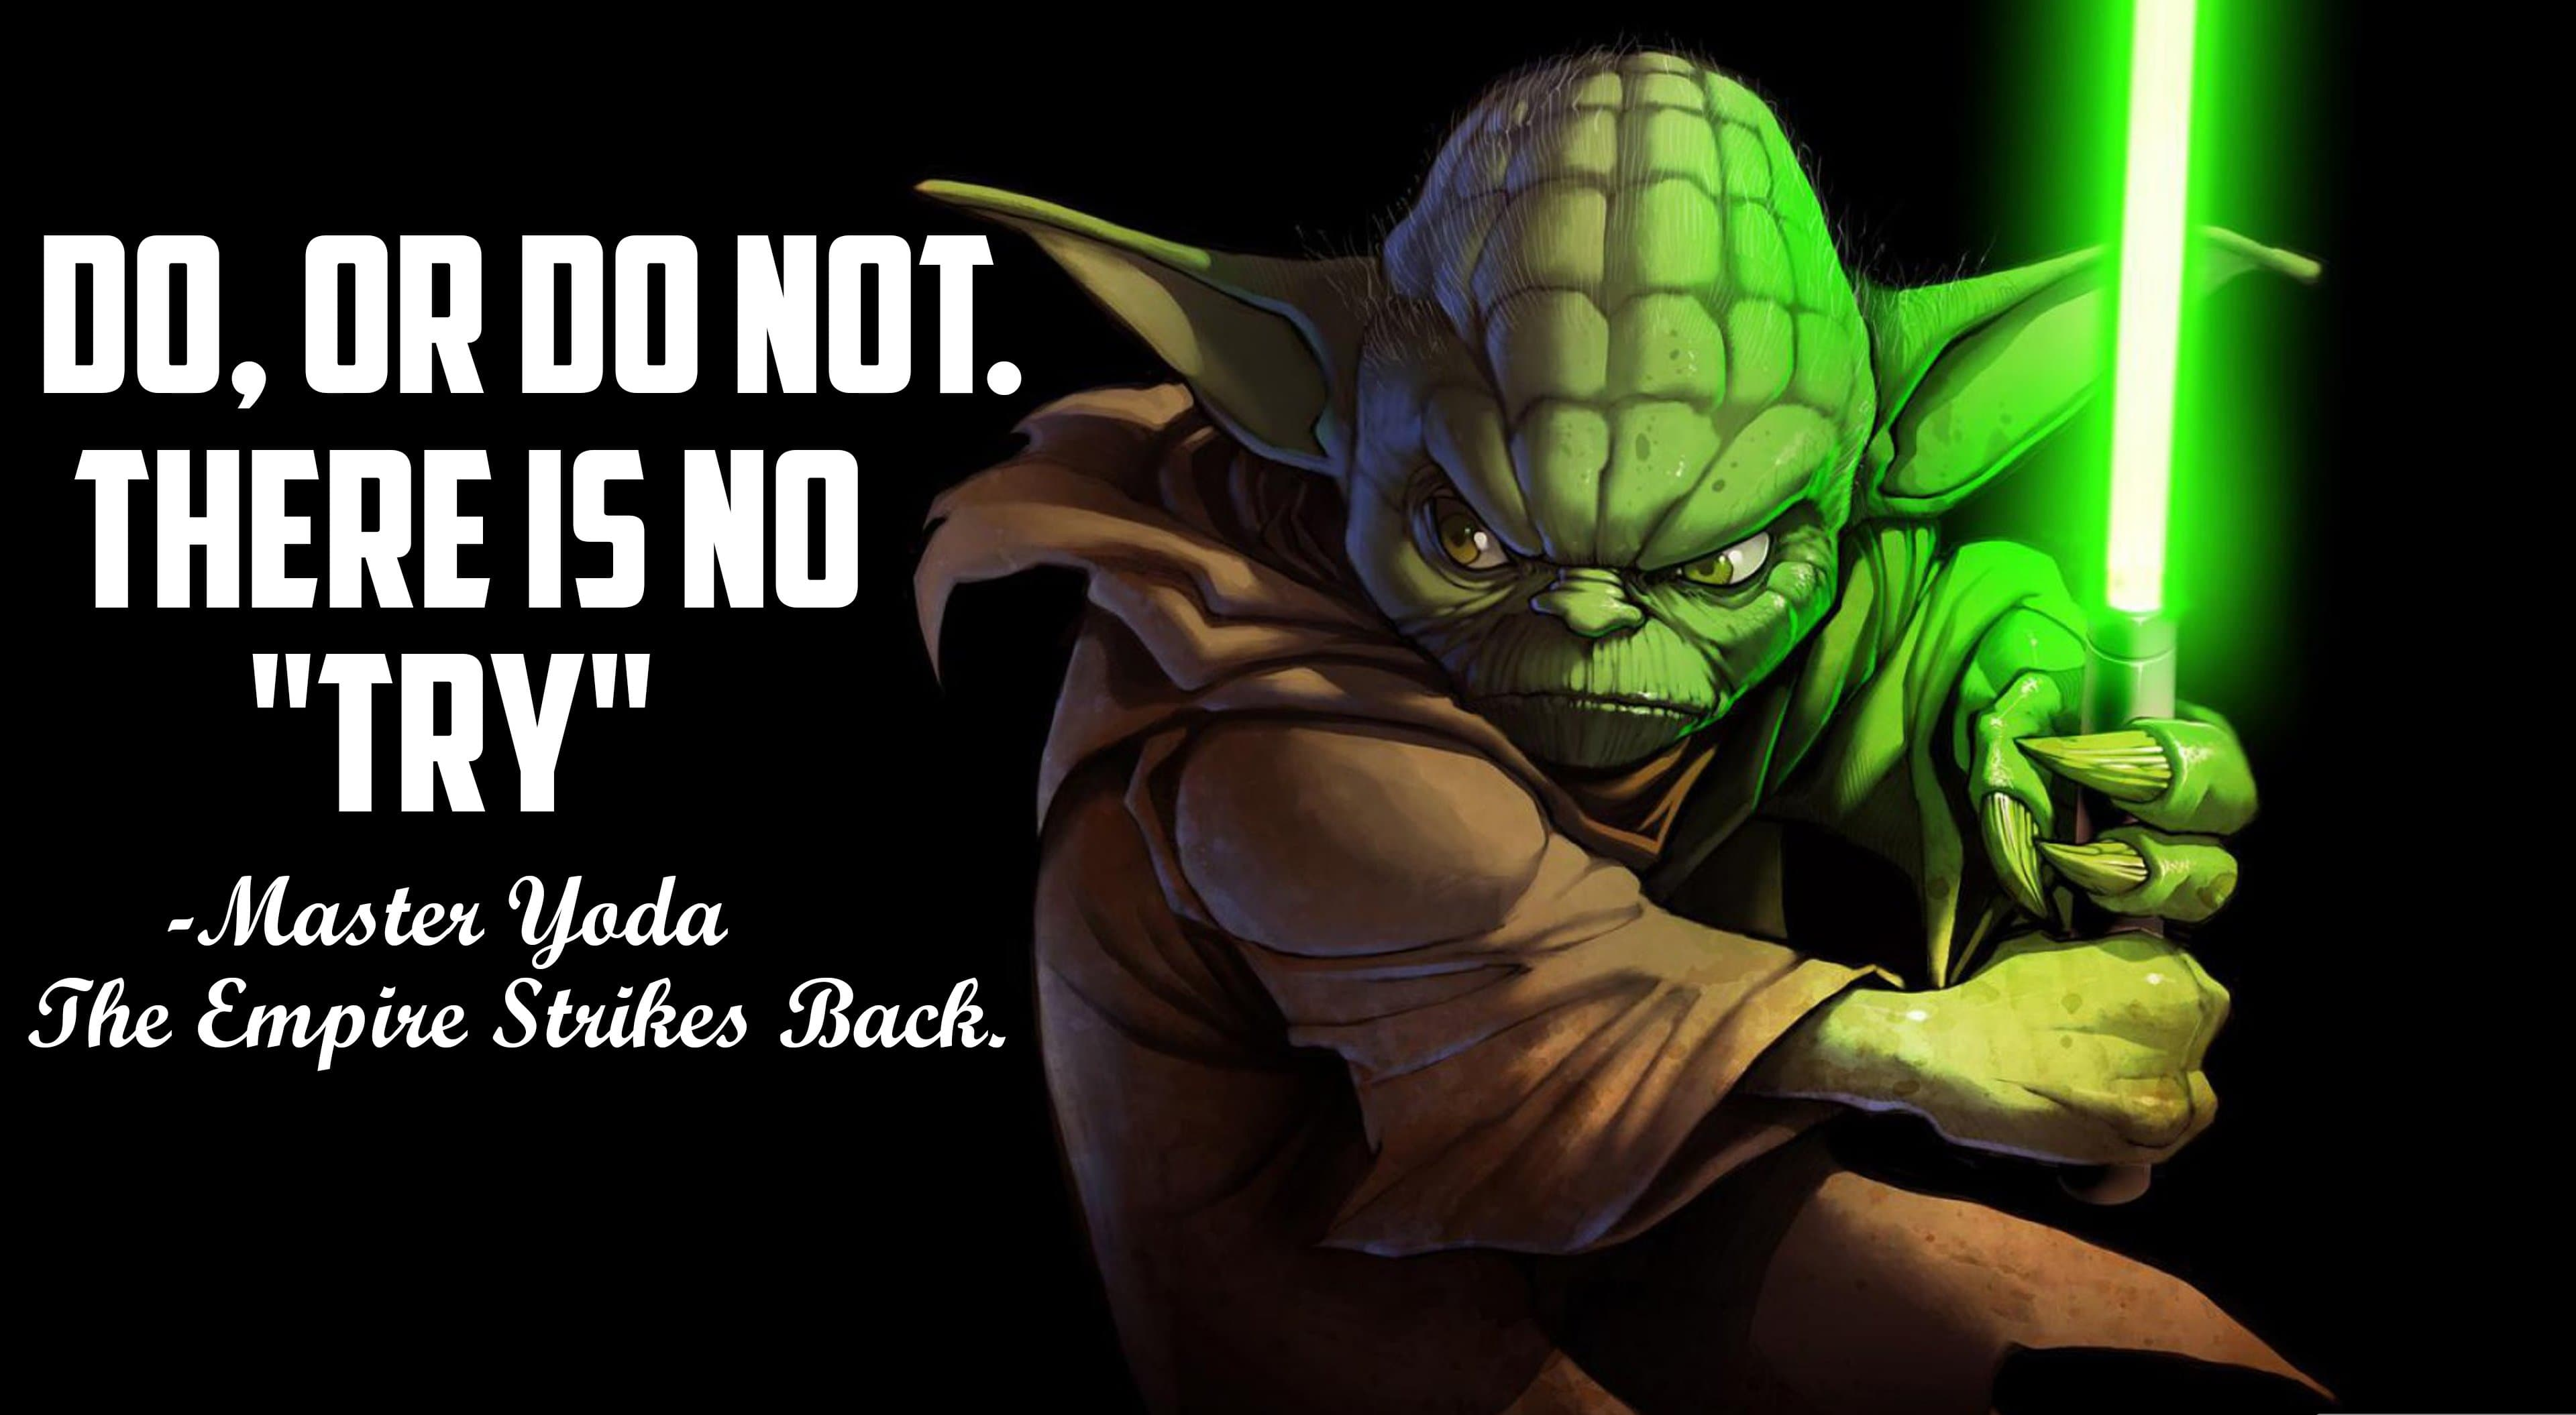 3840x2110 master yoda quote #1190 Wallpapers and Free Stock Photos ...